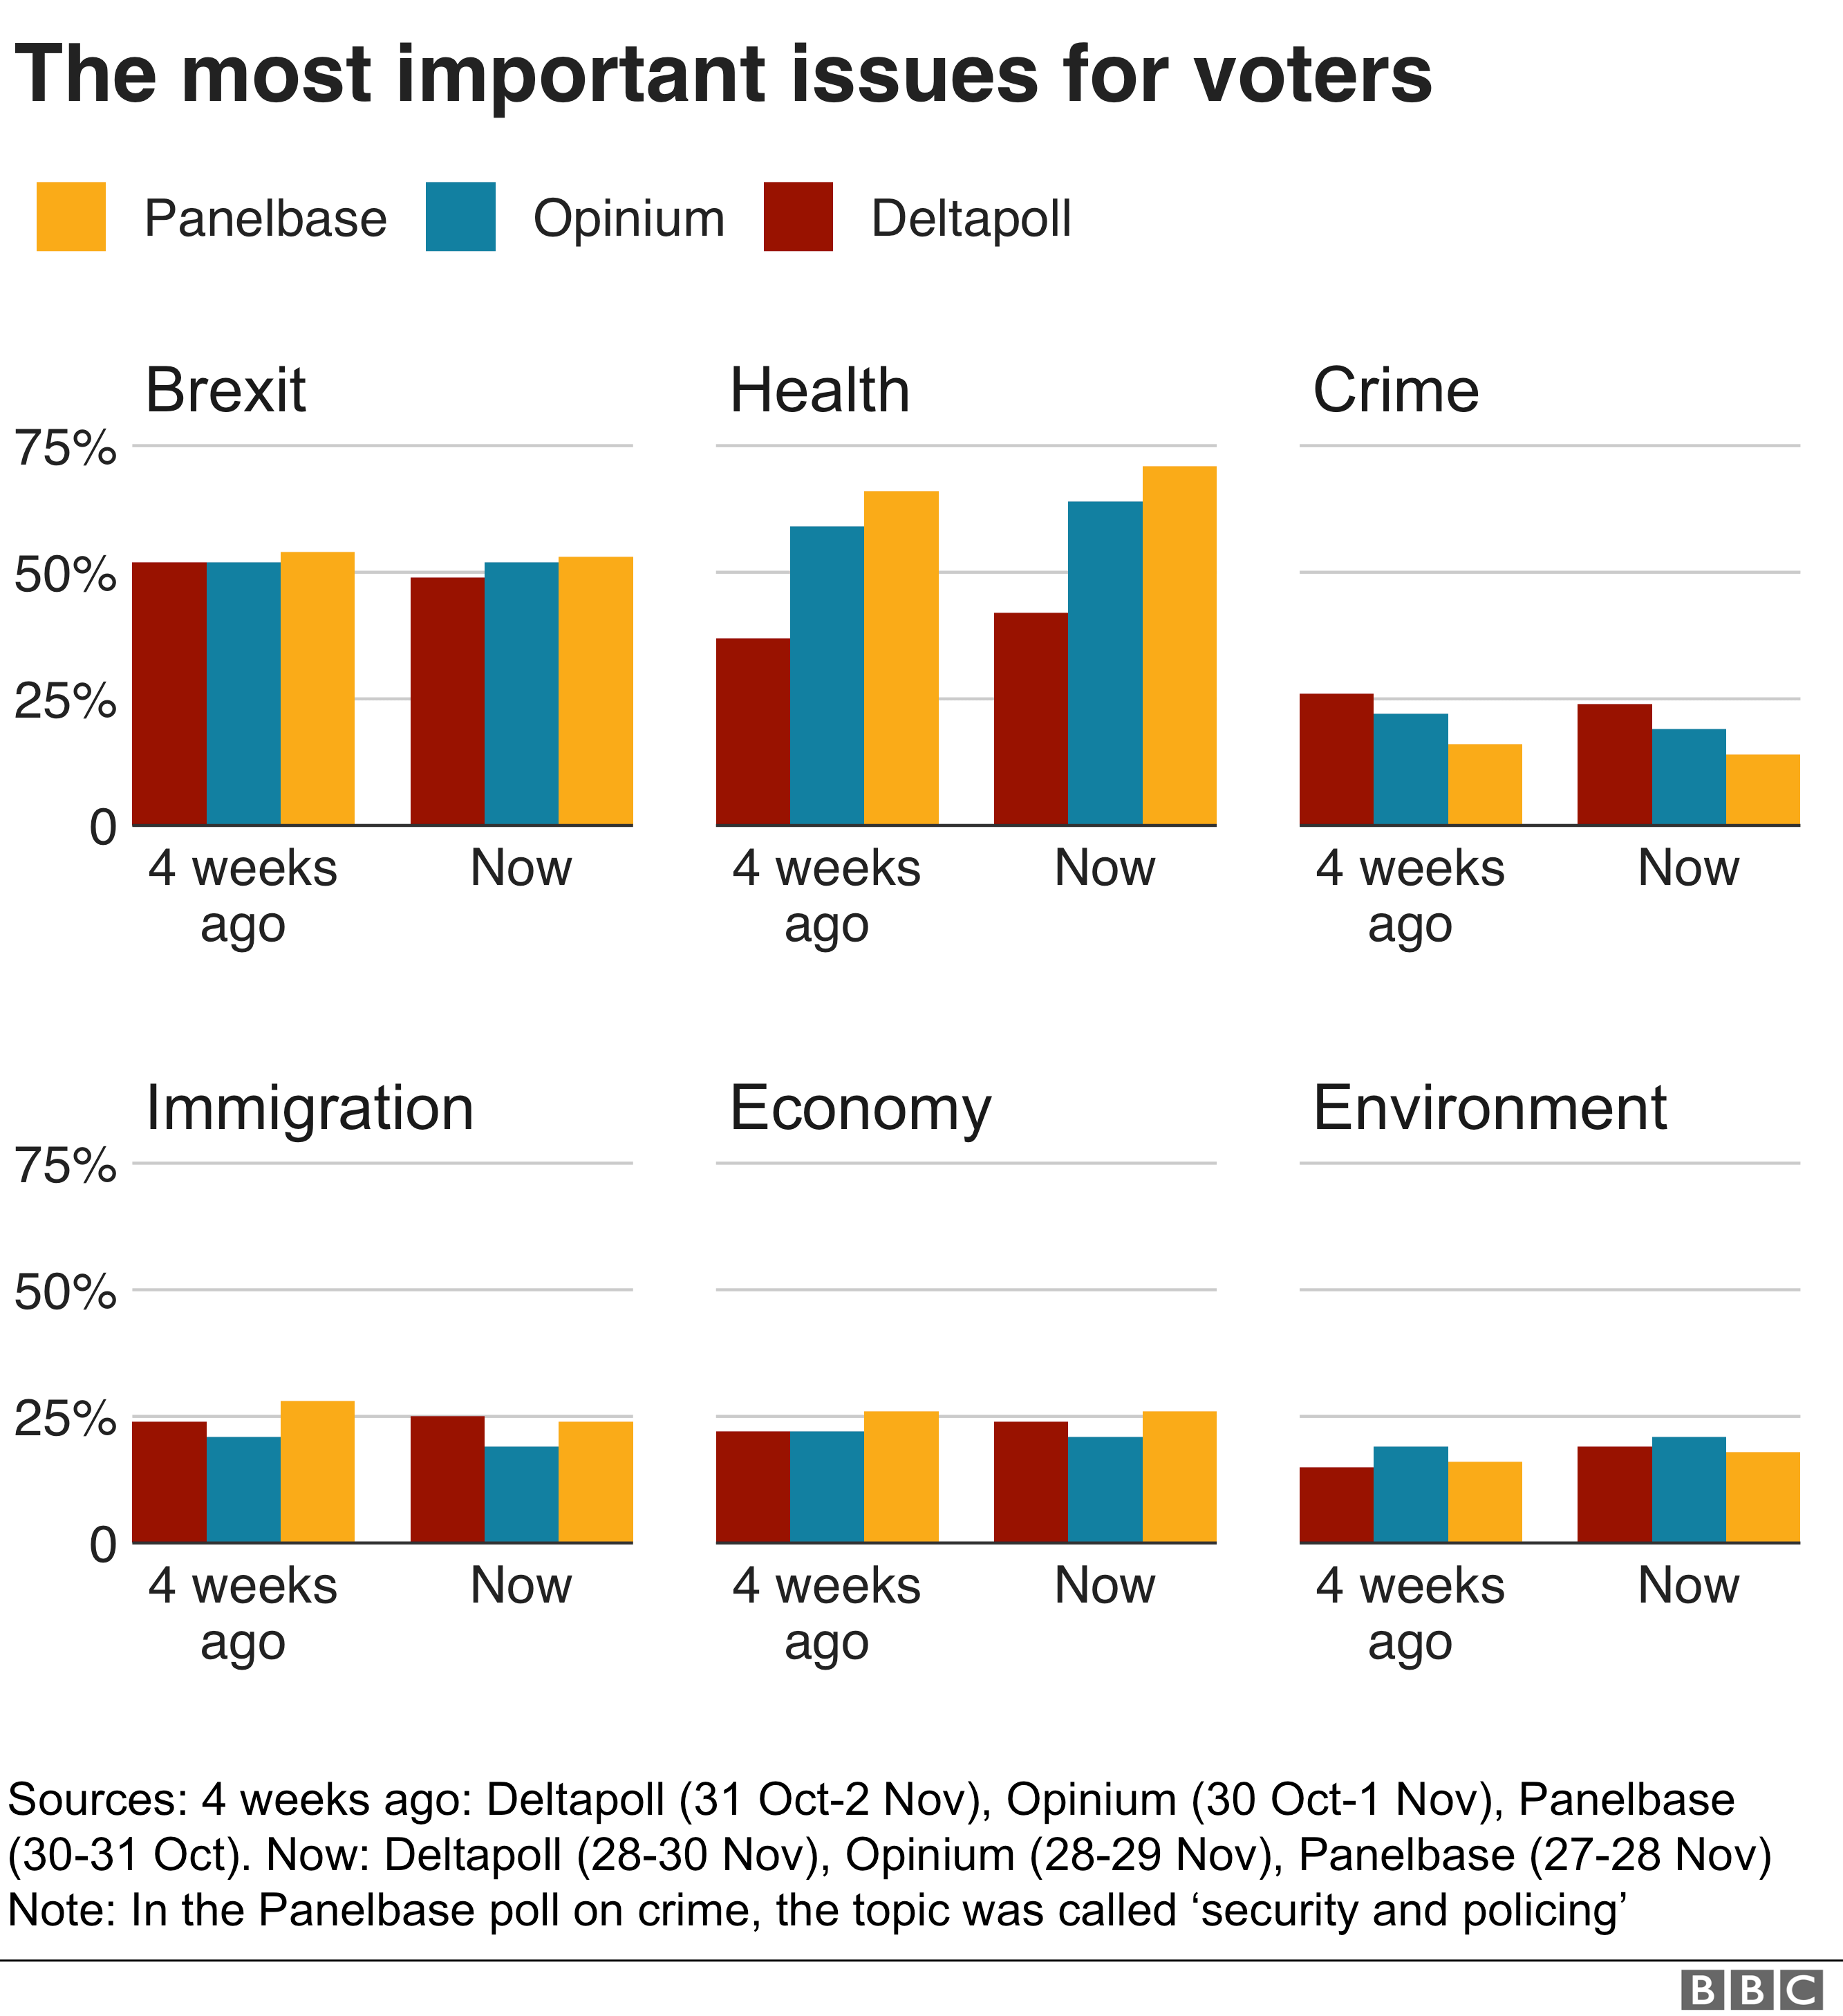 Bar charts of the most important issues for voters